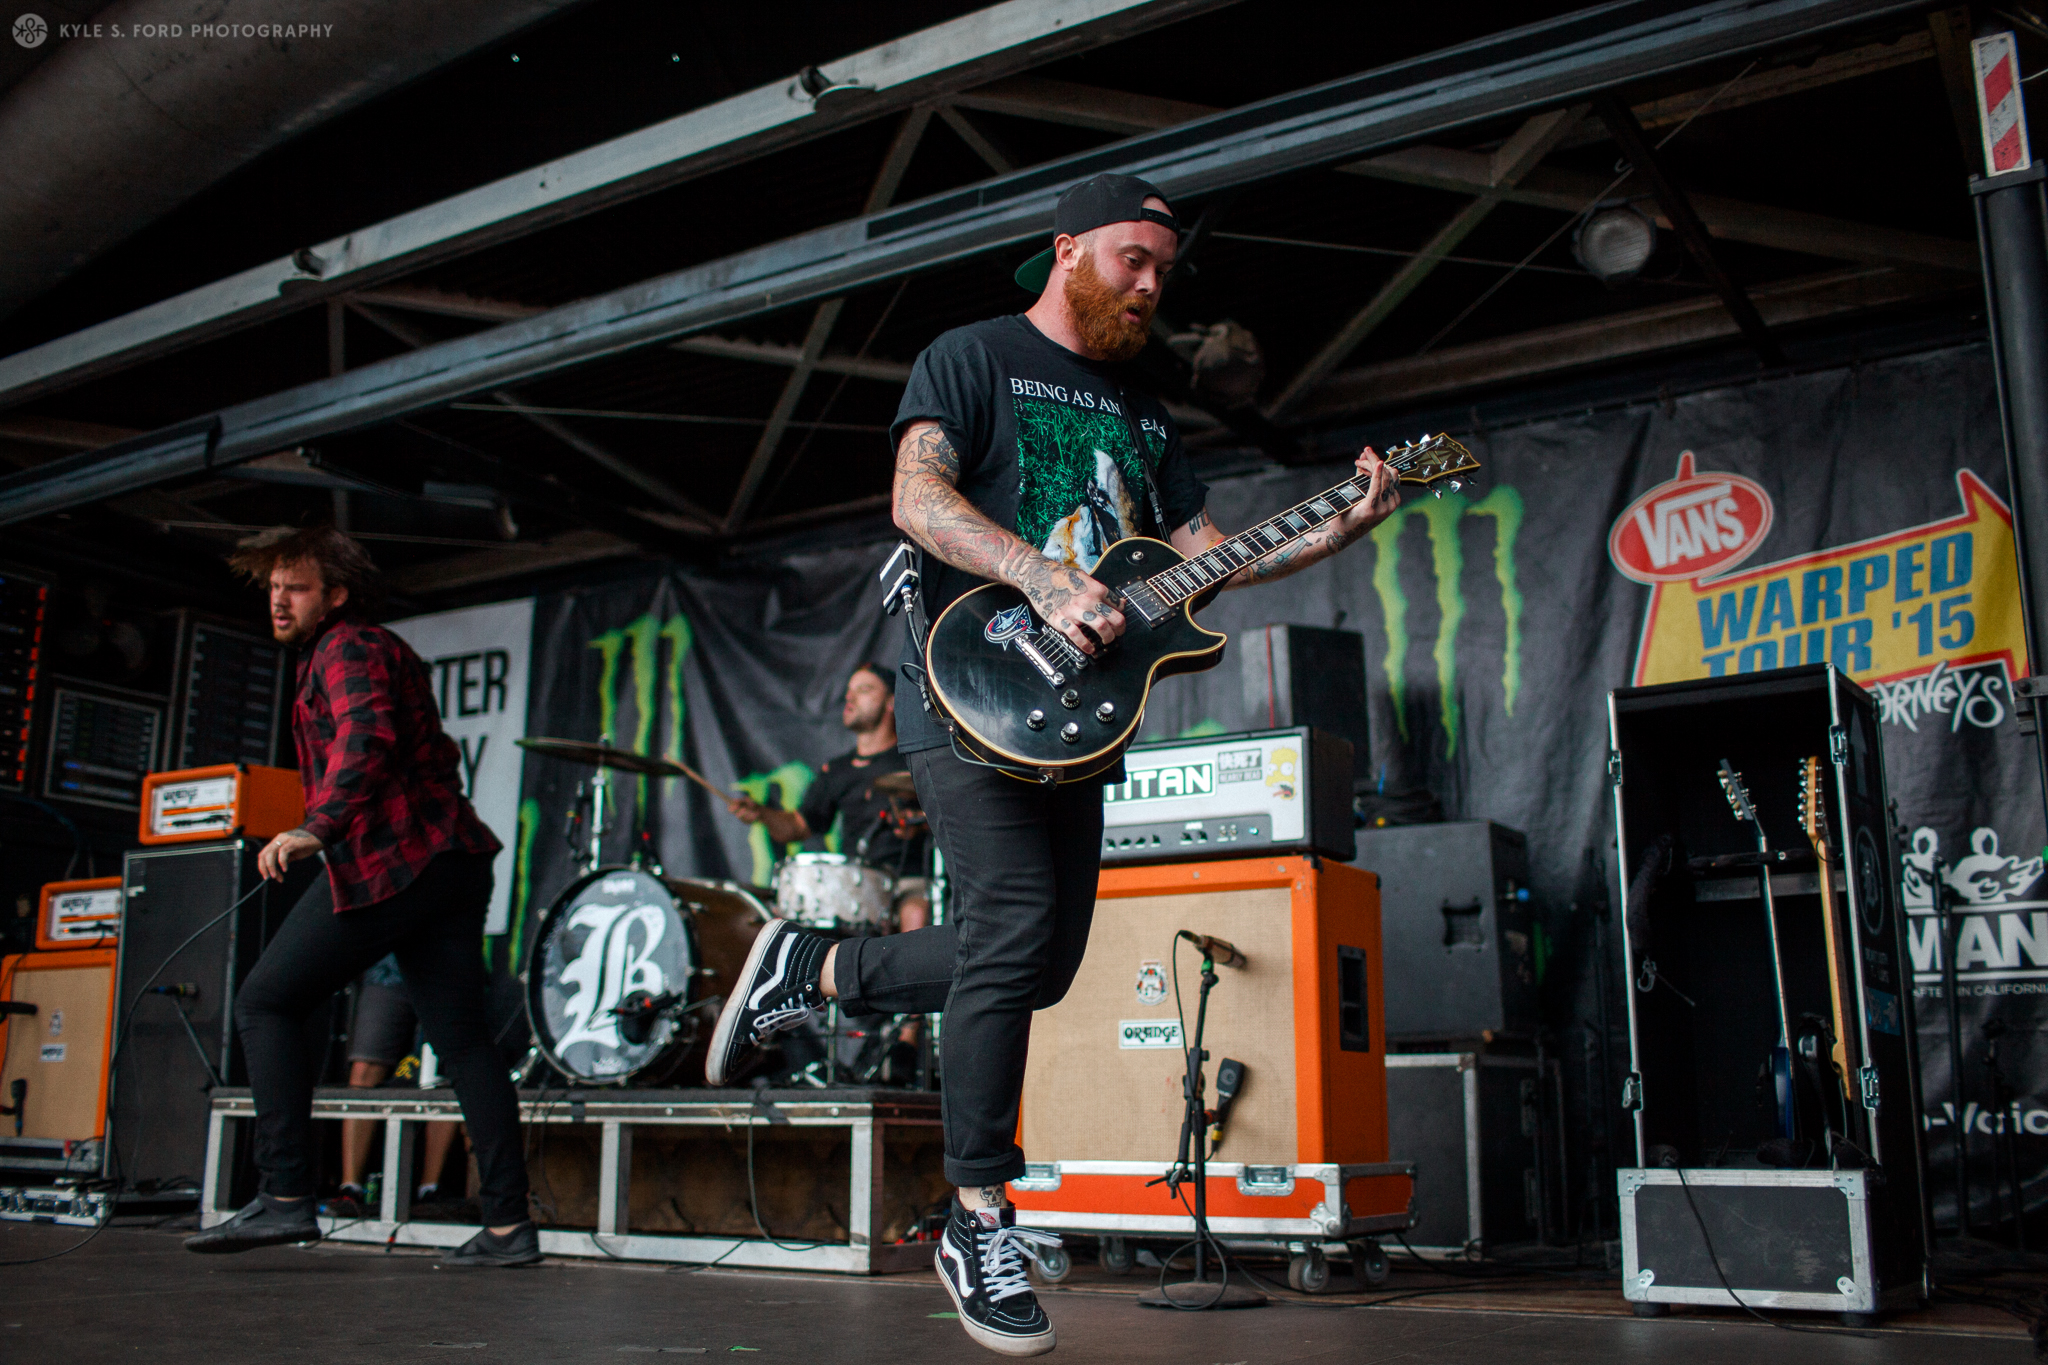 Vans-Warped-Tour-2015-Kyle-Ford_47